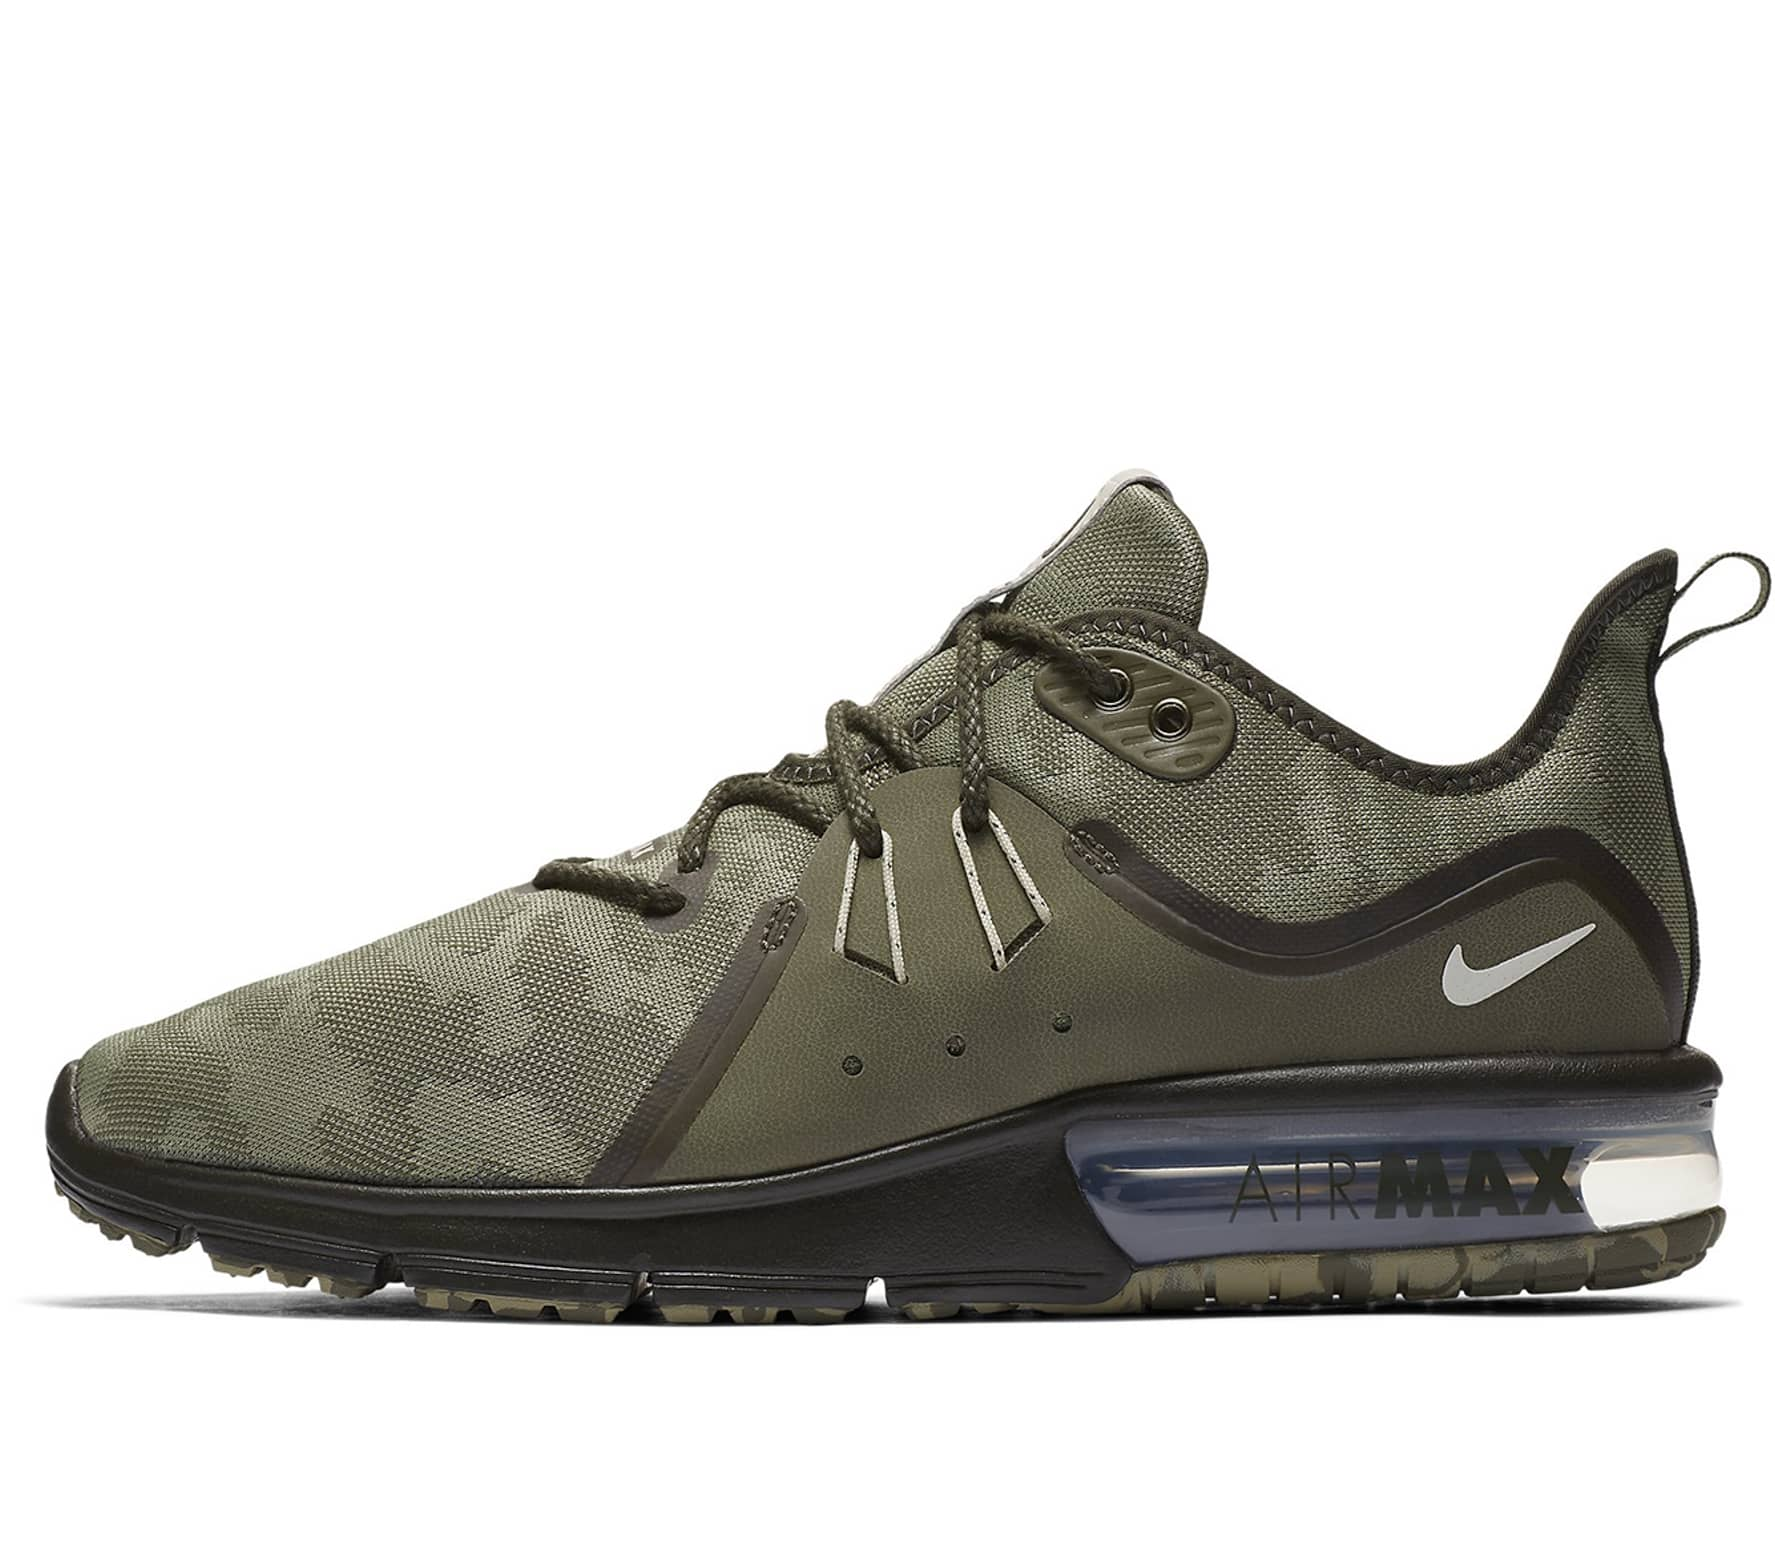 taille 40 04a53 4c9a5 Nike Air Max Sequent 3 chaussures de running pour hommes Men